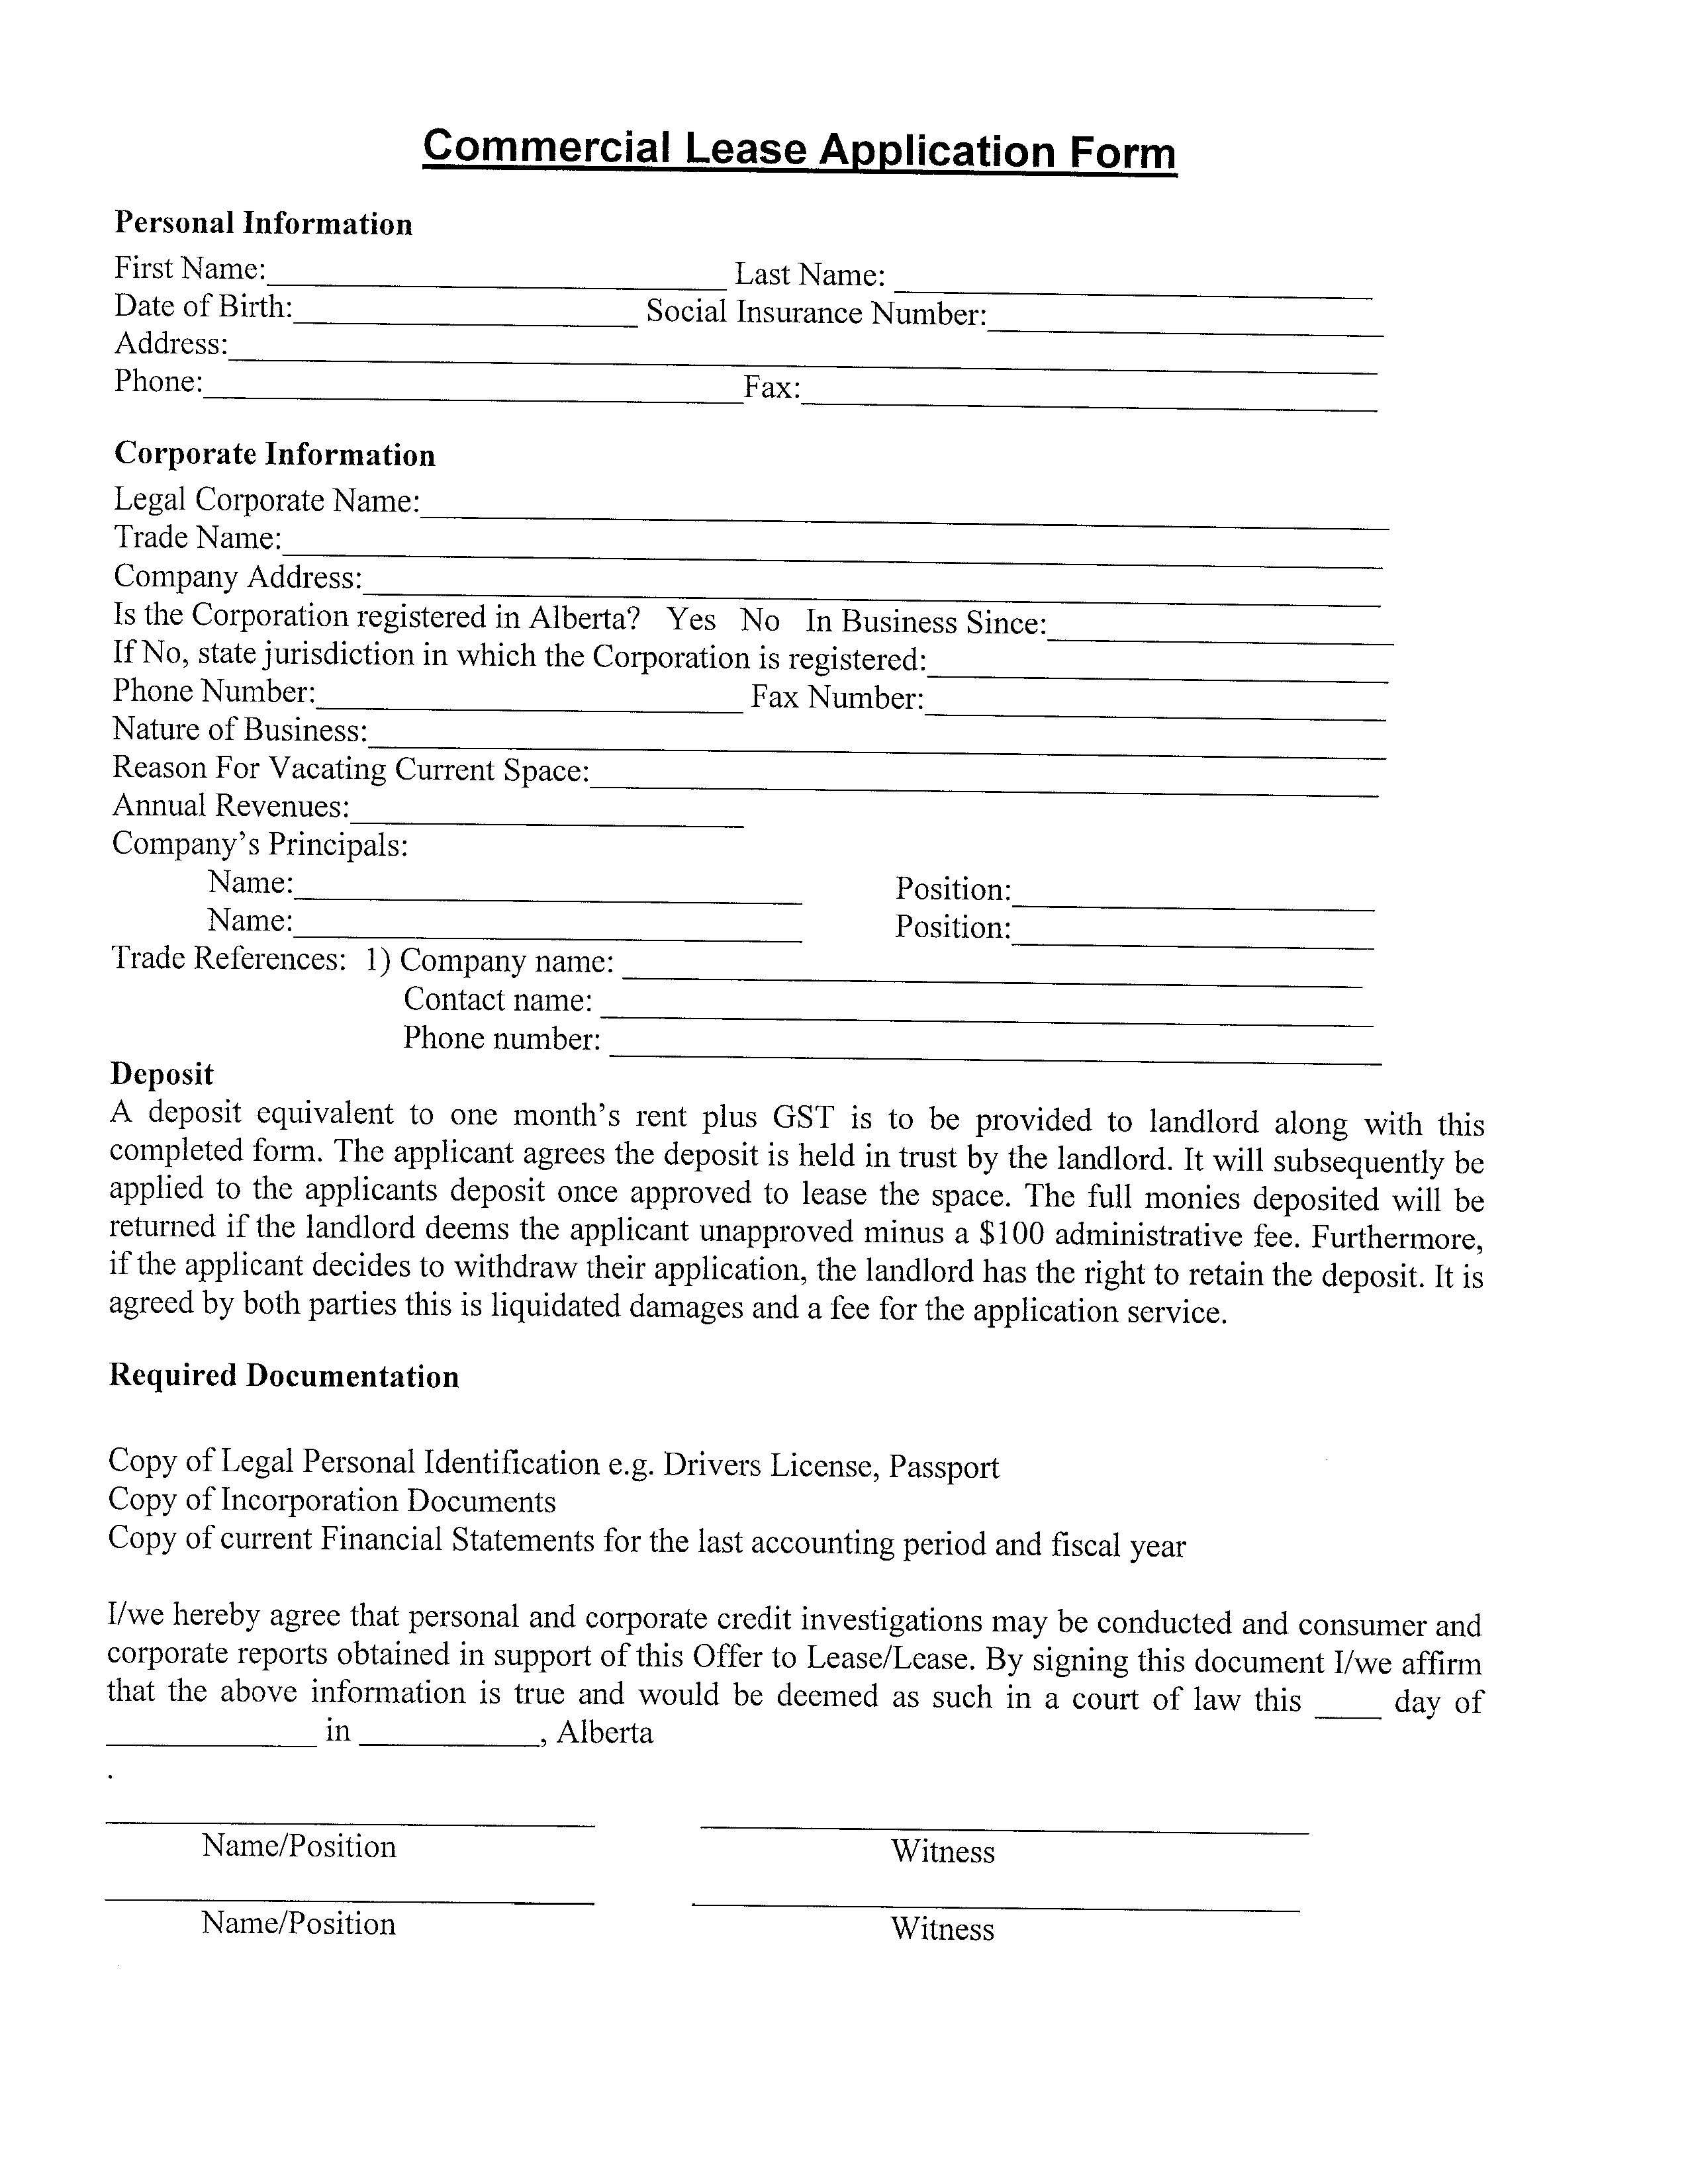 Free Blank Commercial Lease Application Form Templates At